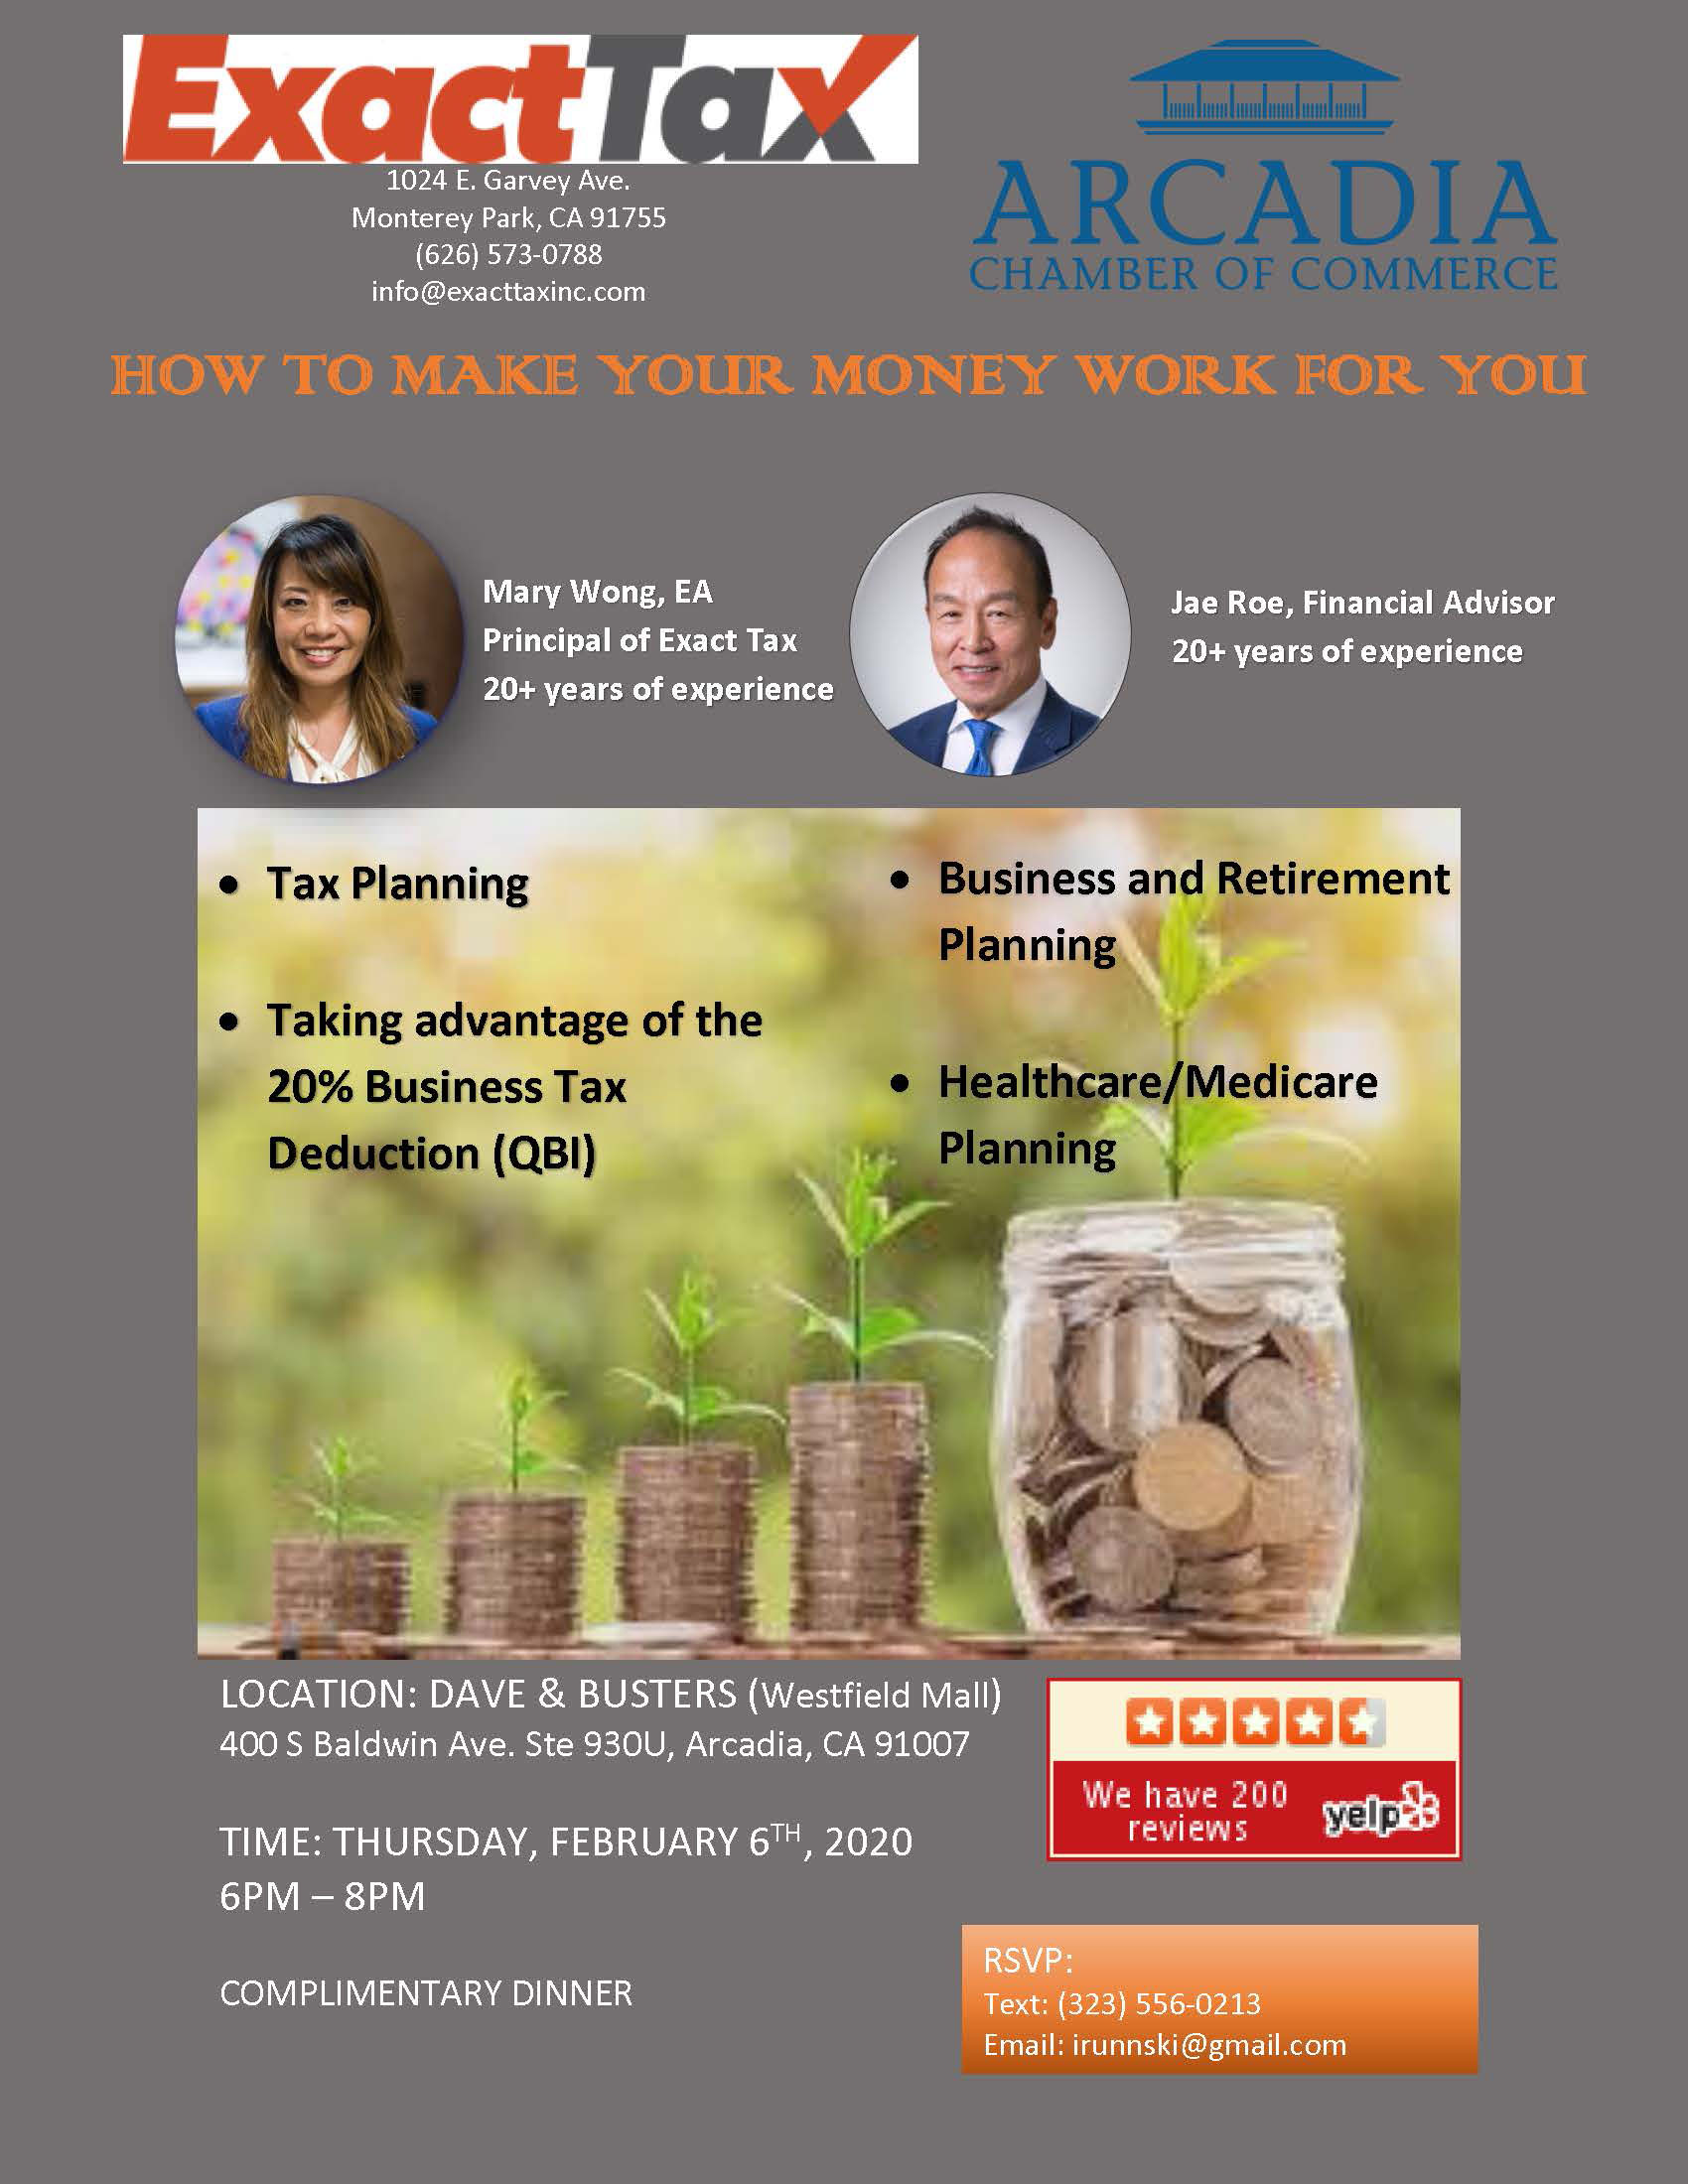 How to make your money work for you with Jae Roe